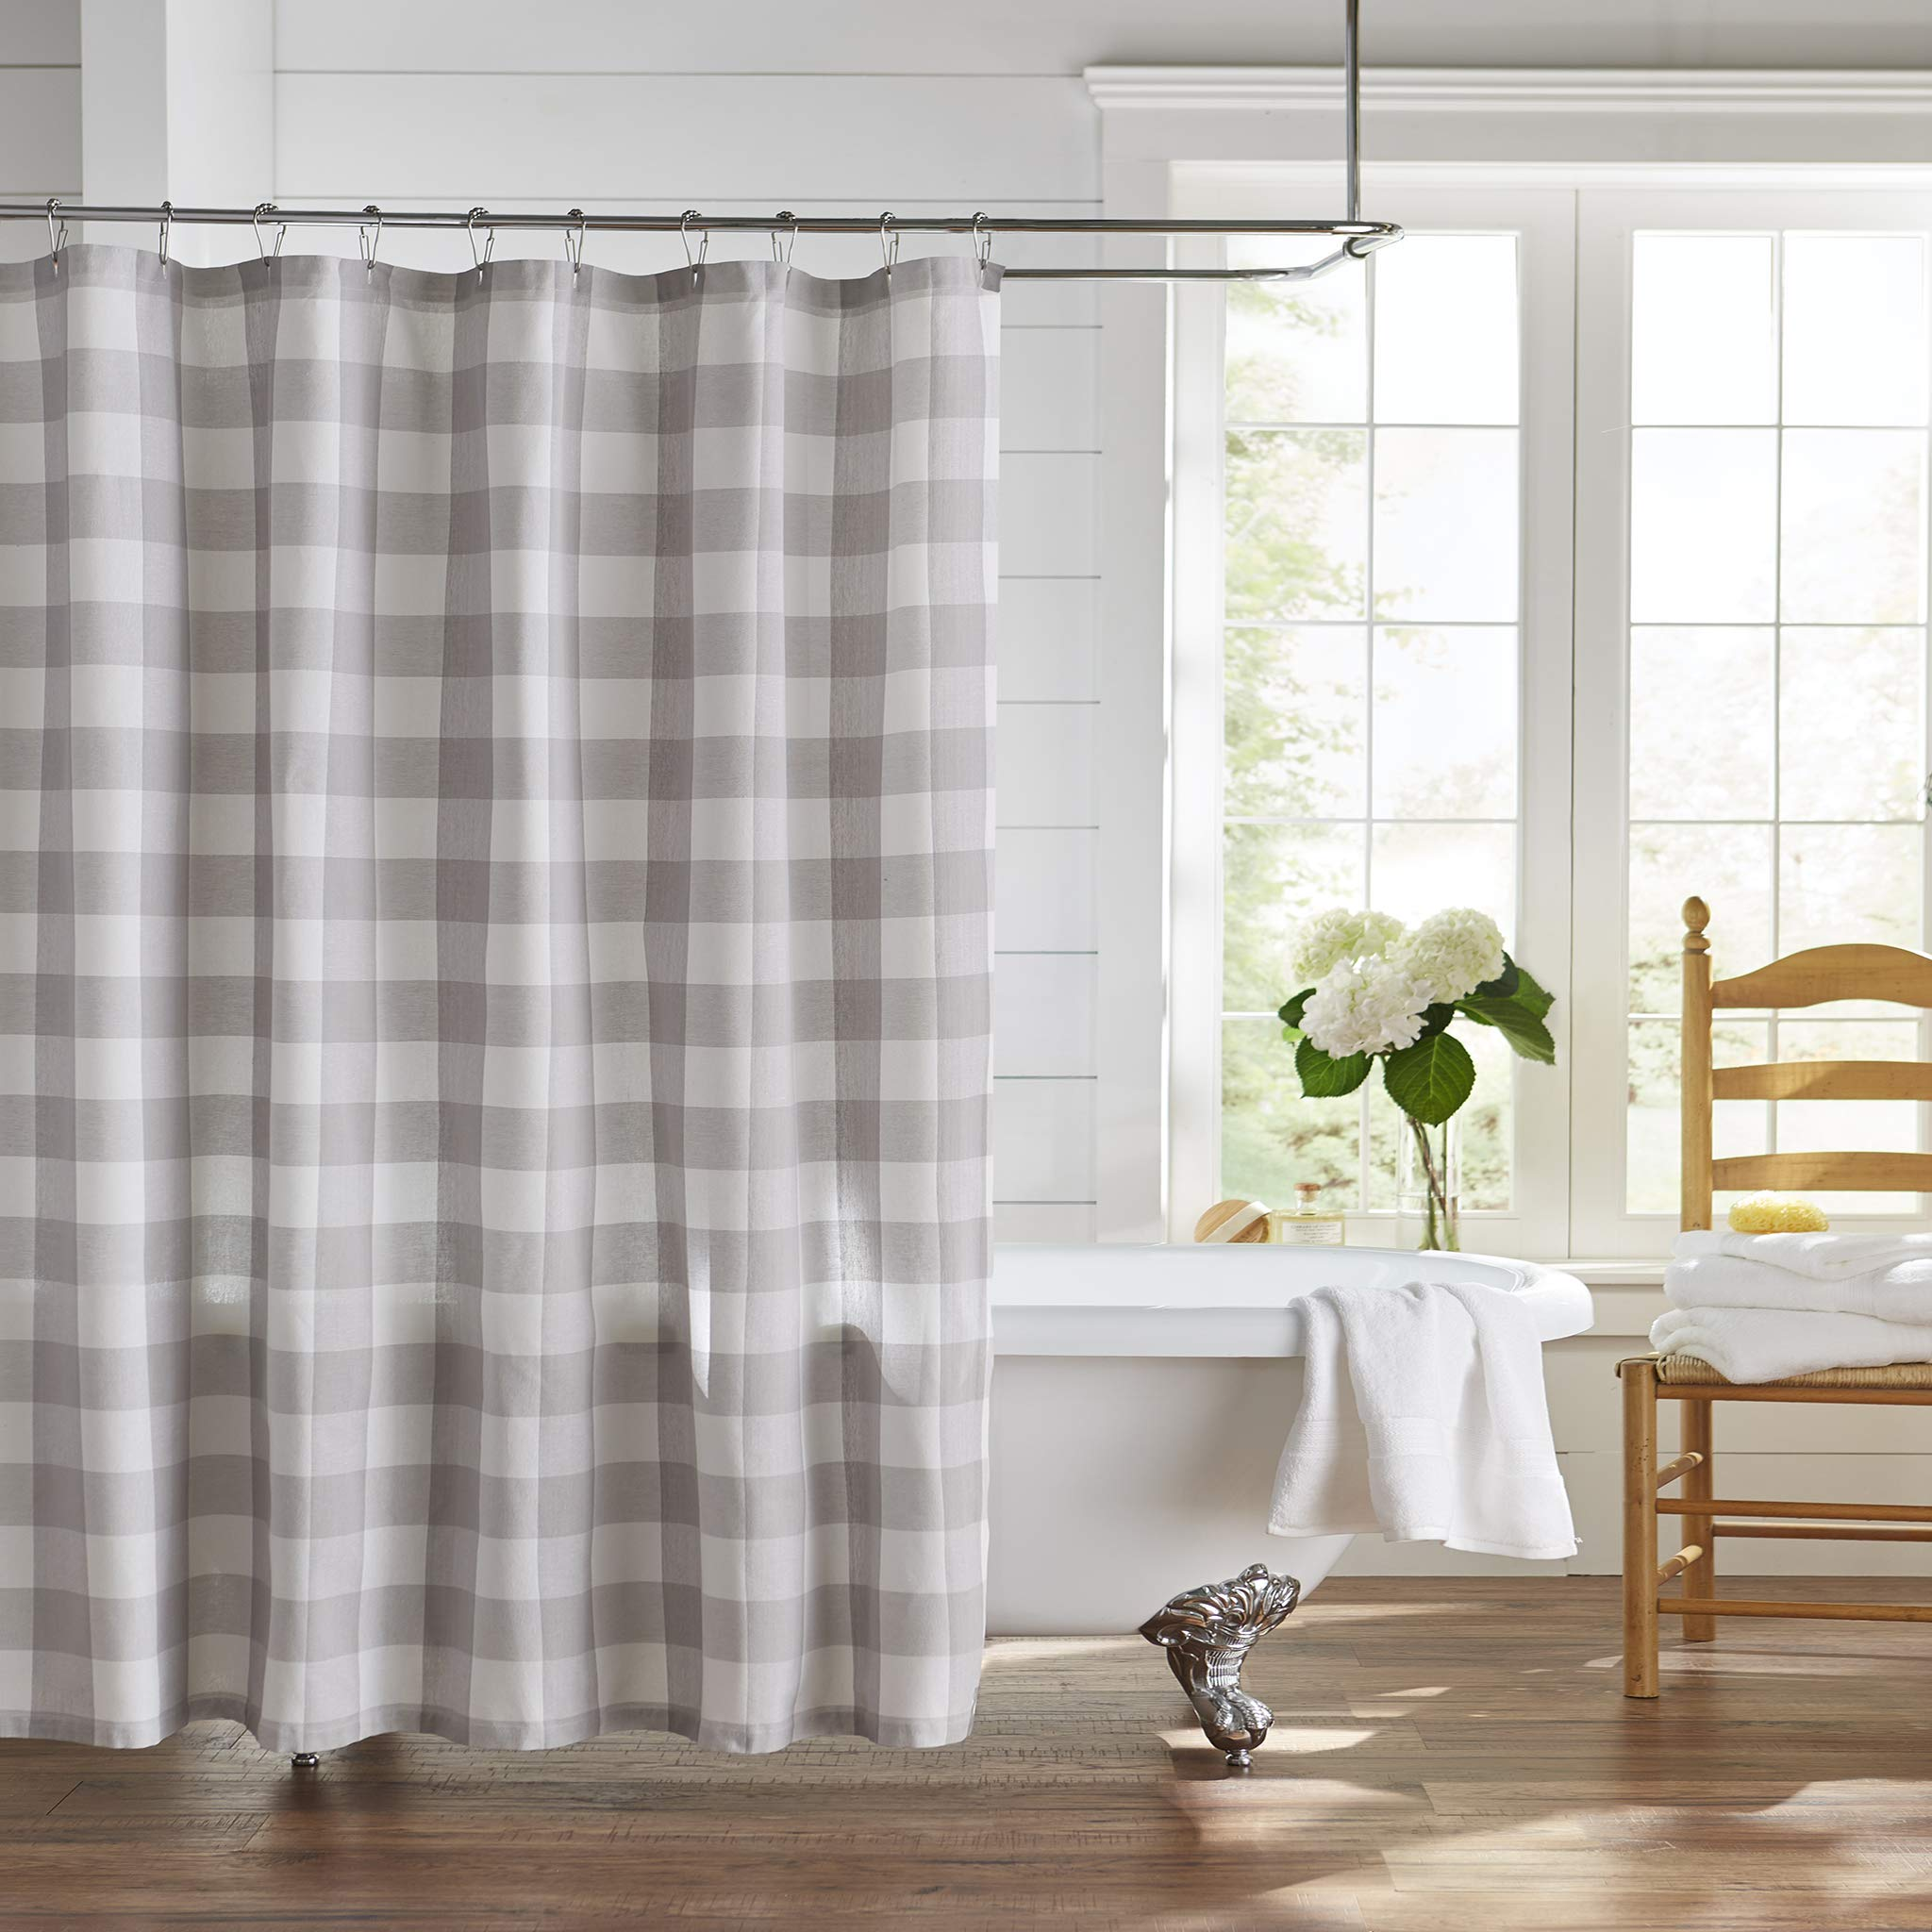 Elrene Home Fashions Farmhouse Living Buffalo Check Shower Curtain, 72'' x 72'', Gray/White